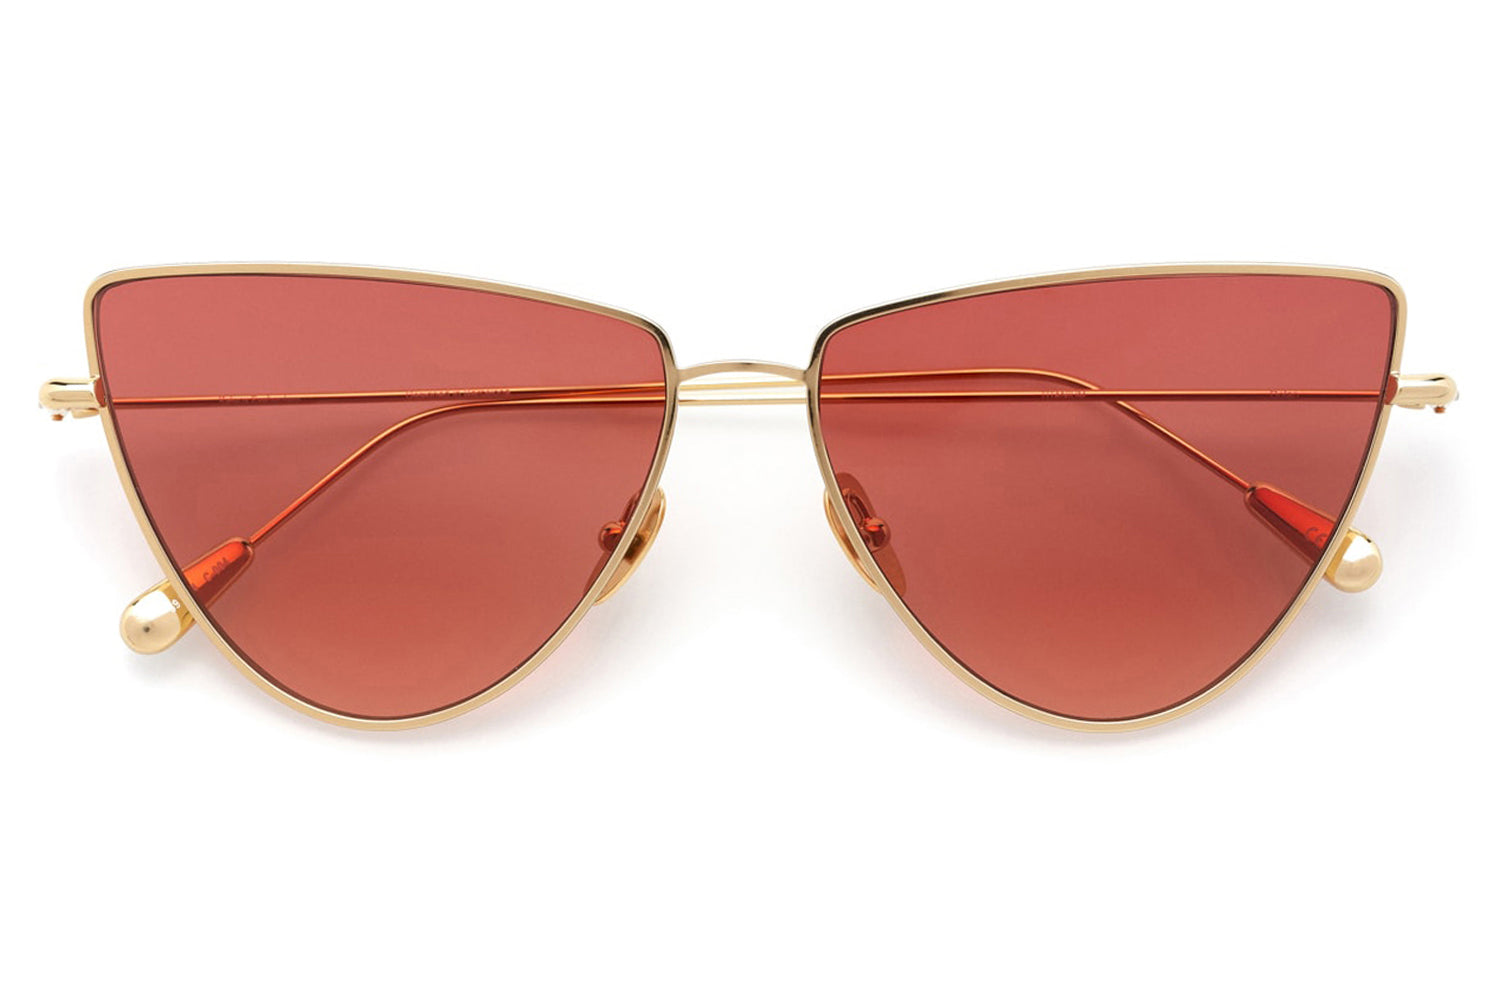 Kaleos Eyehunters - Dolan Sunglasses Gold with Red Lenses